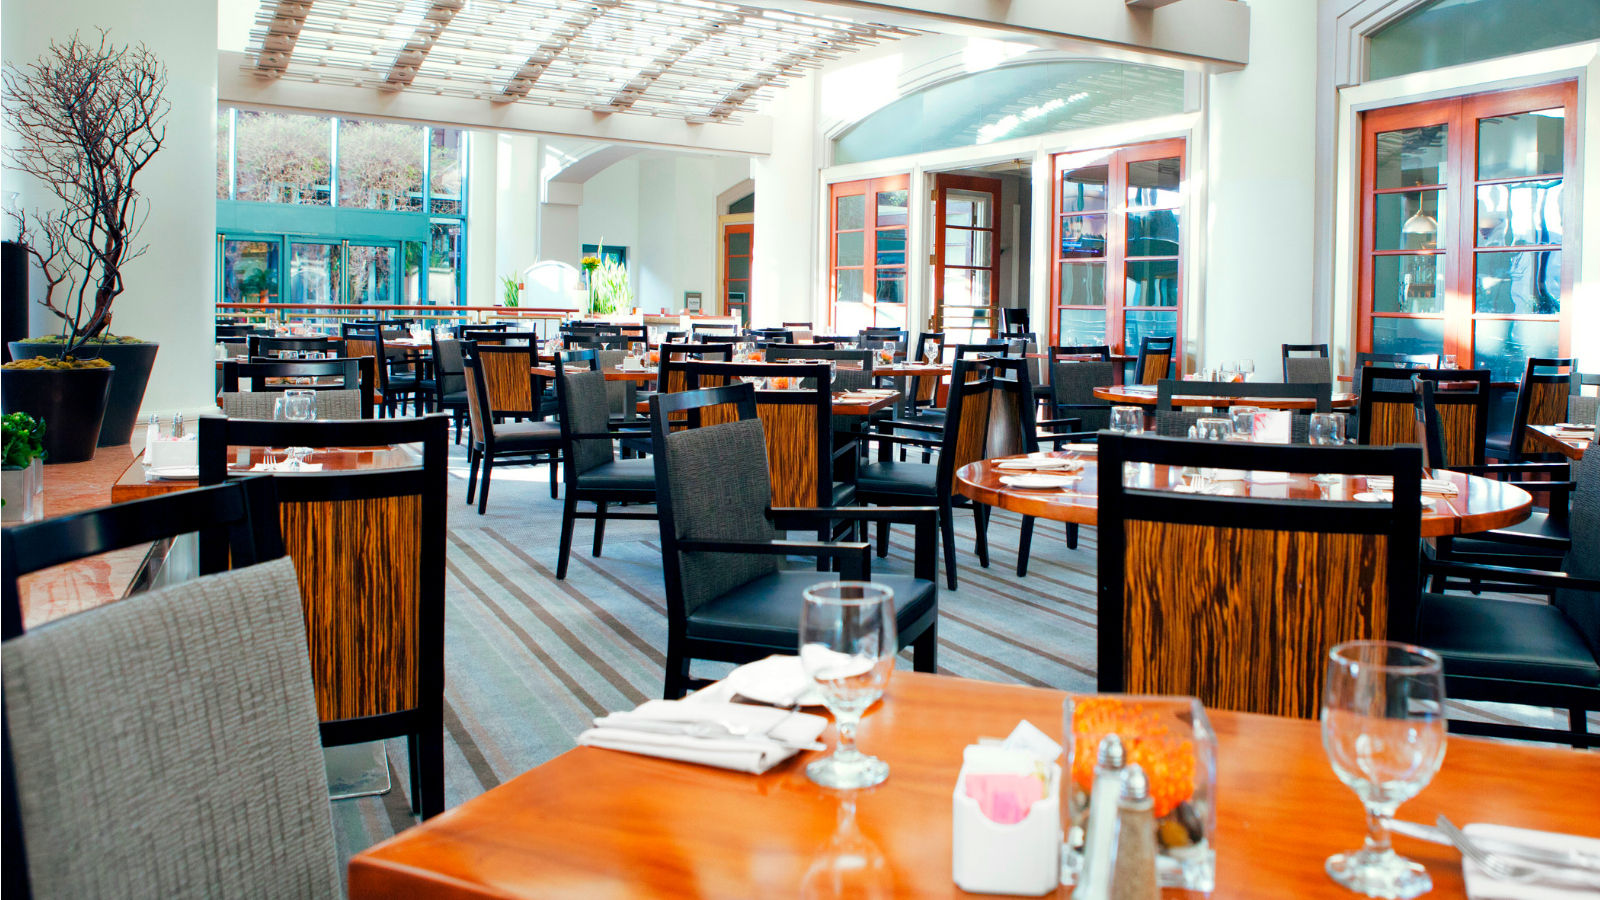 Long Beach Meeting Space - The Grill Restaurant